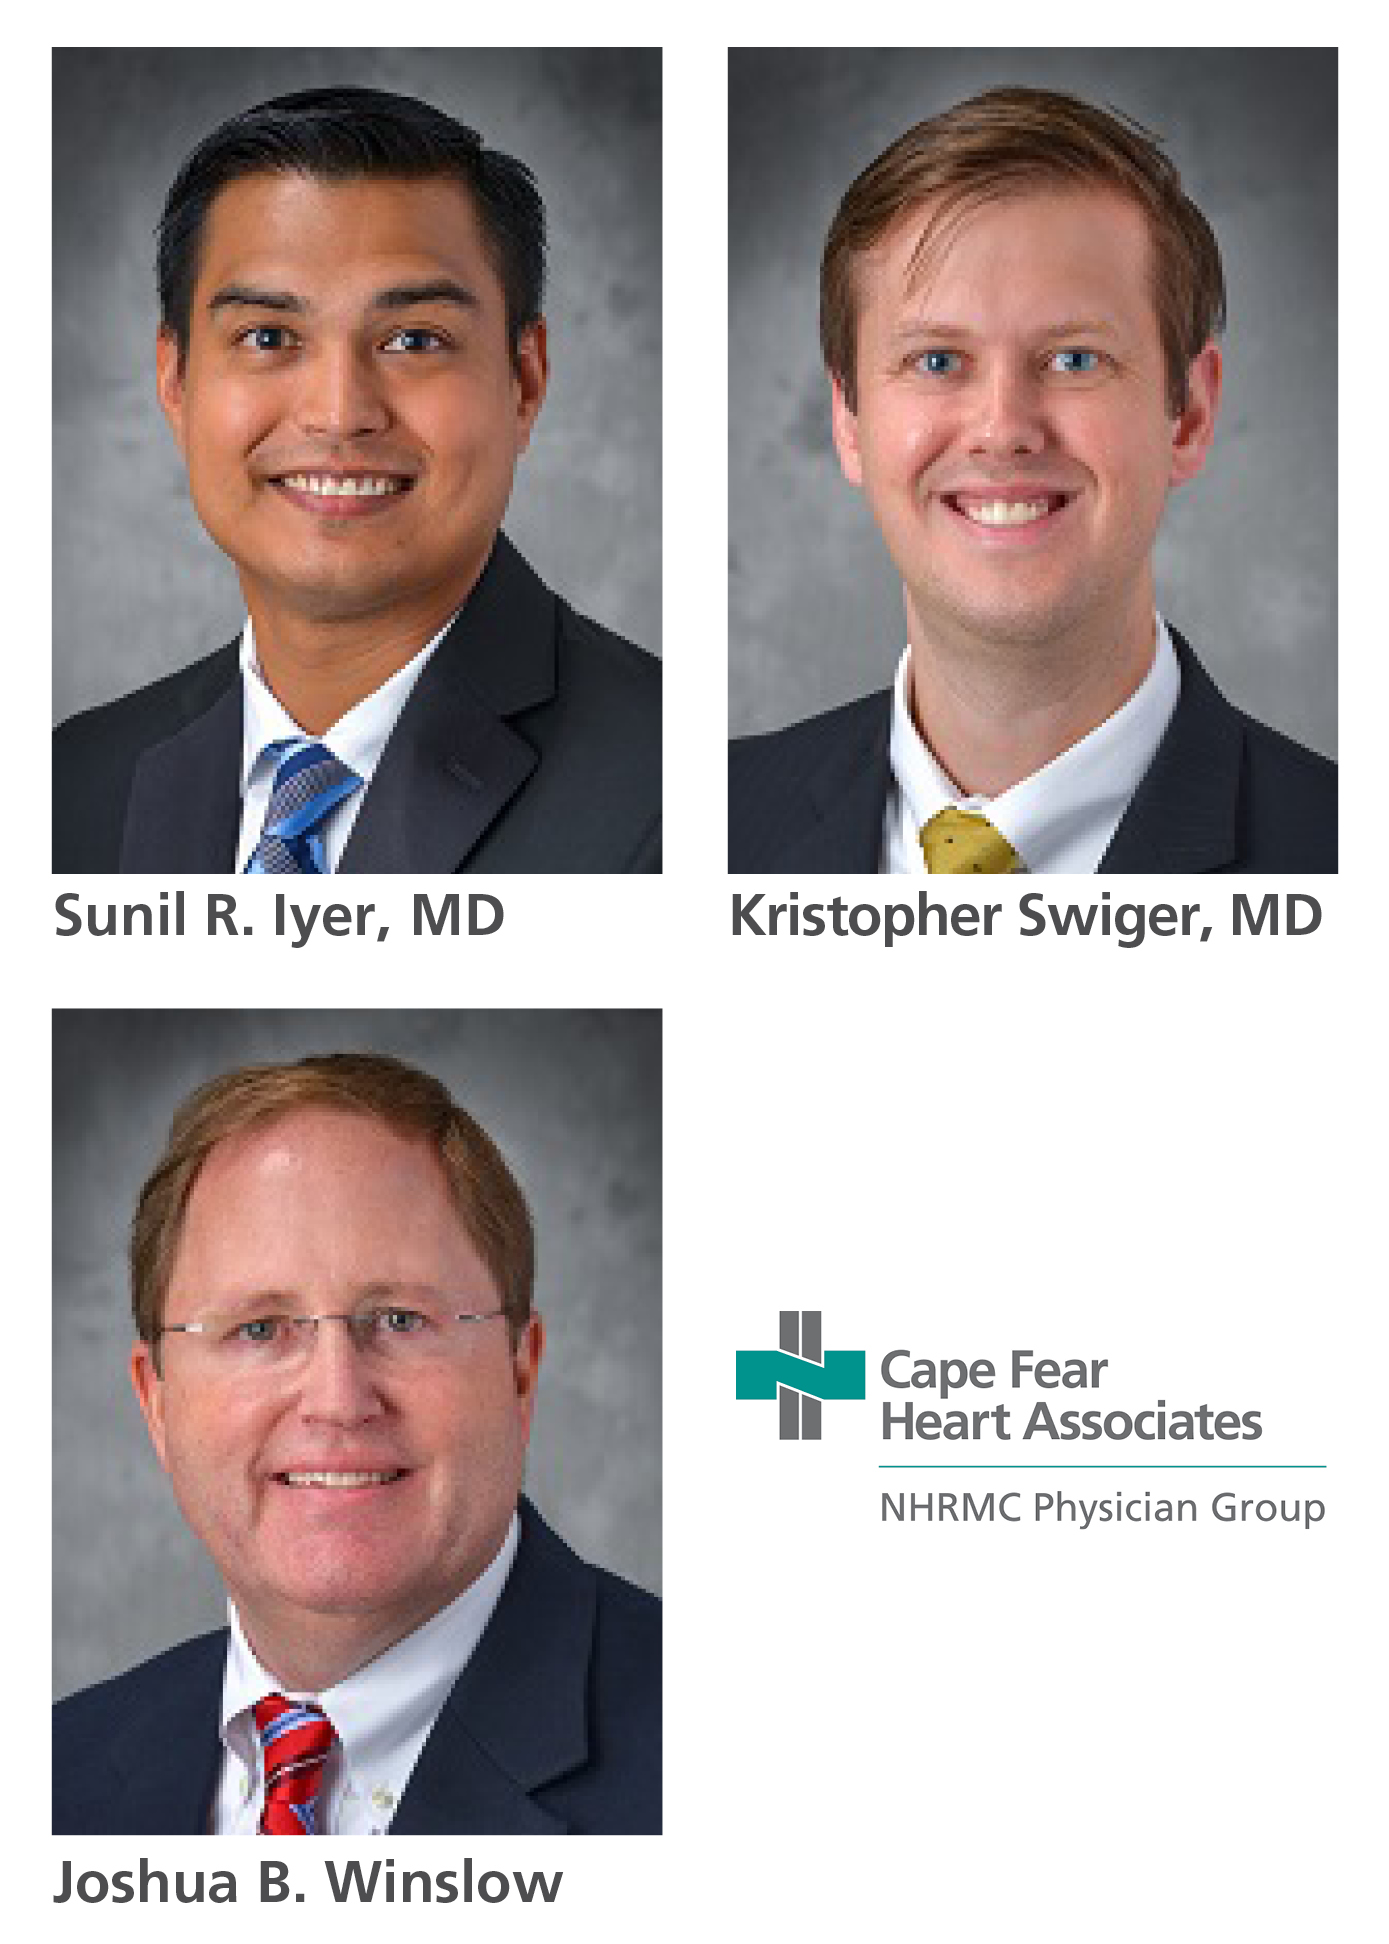 NHRMC Physician Group - Cape Fear Heart Associates Welcomes